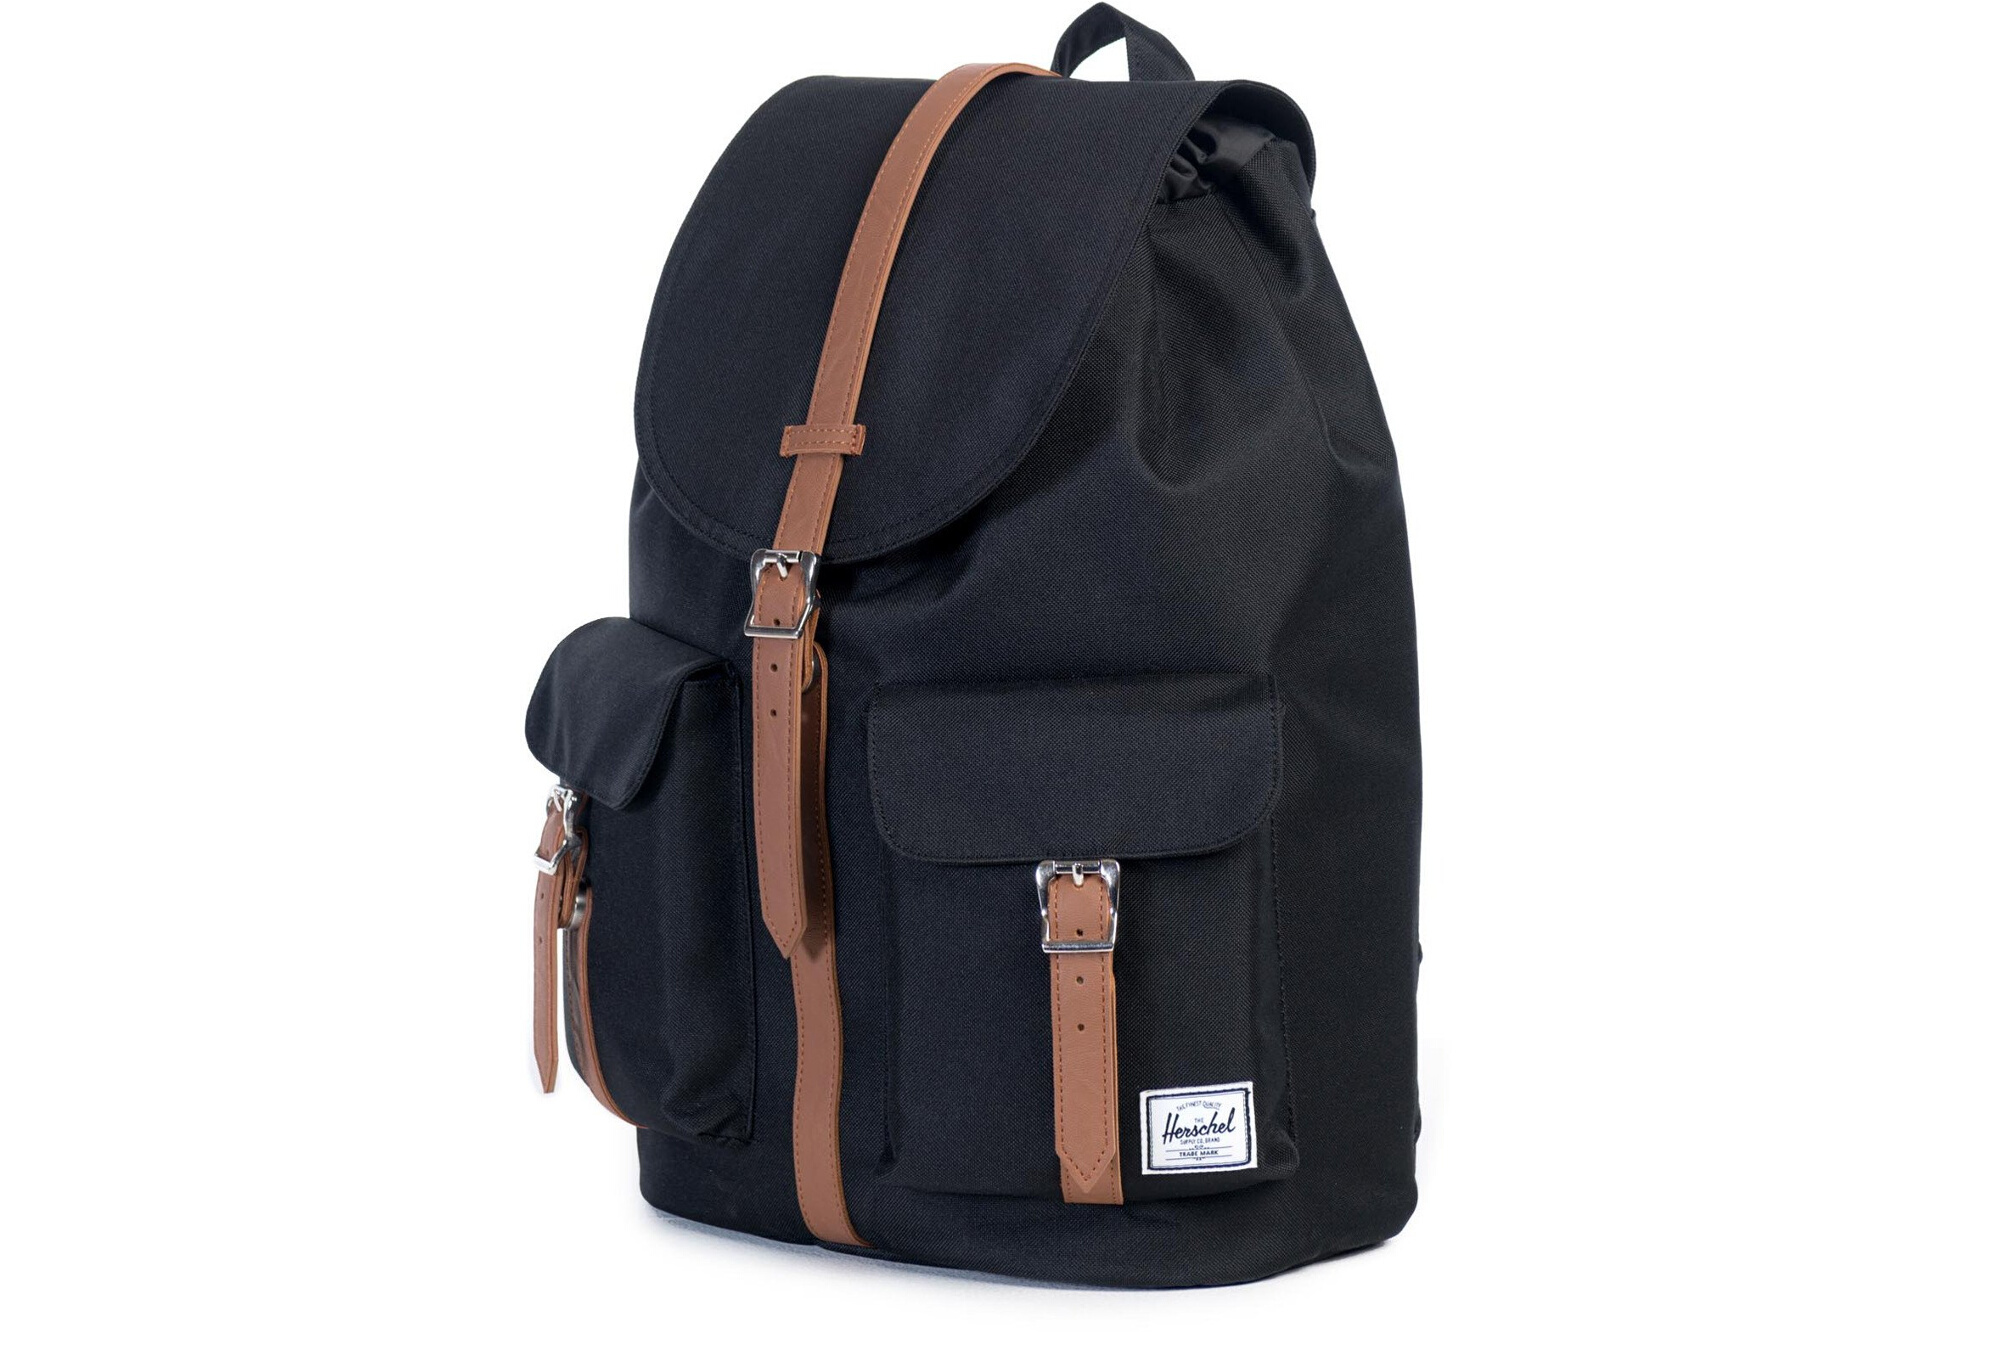 748ba2cb864 HERSCHEL Dawson Backpack 20.5L Black   Tan Synthetic Leather ...